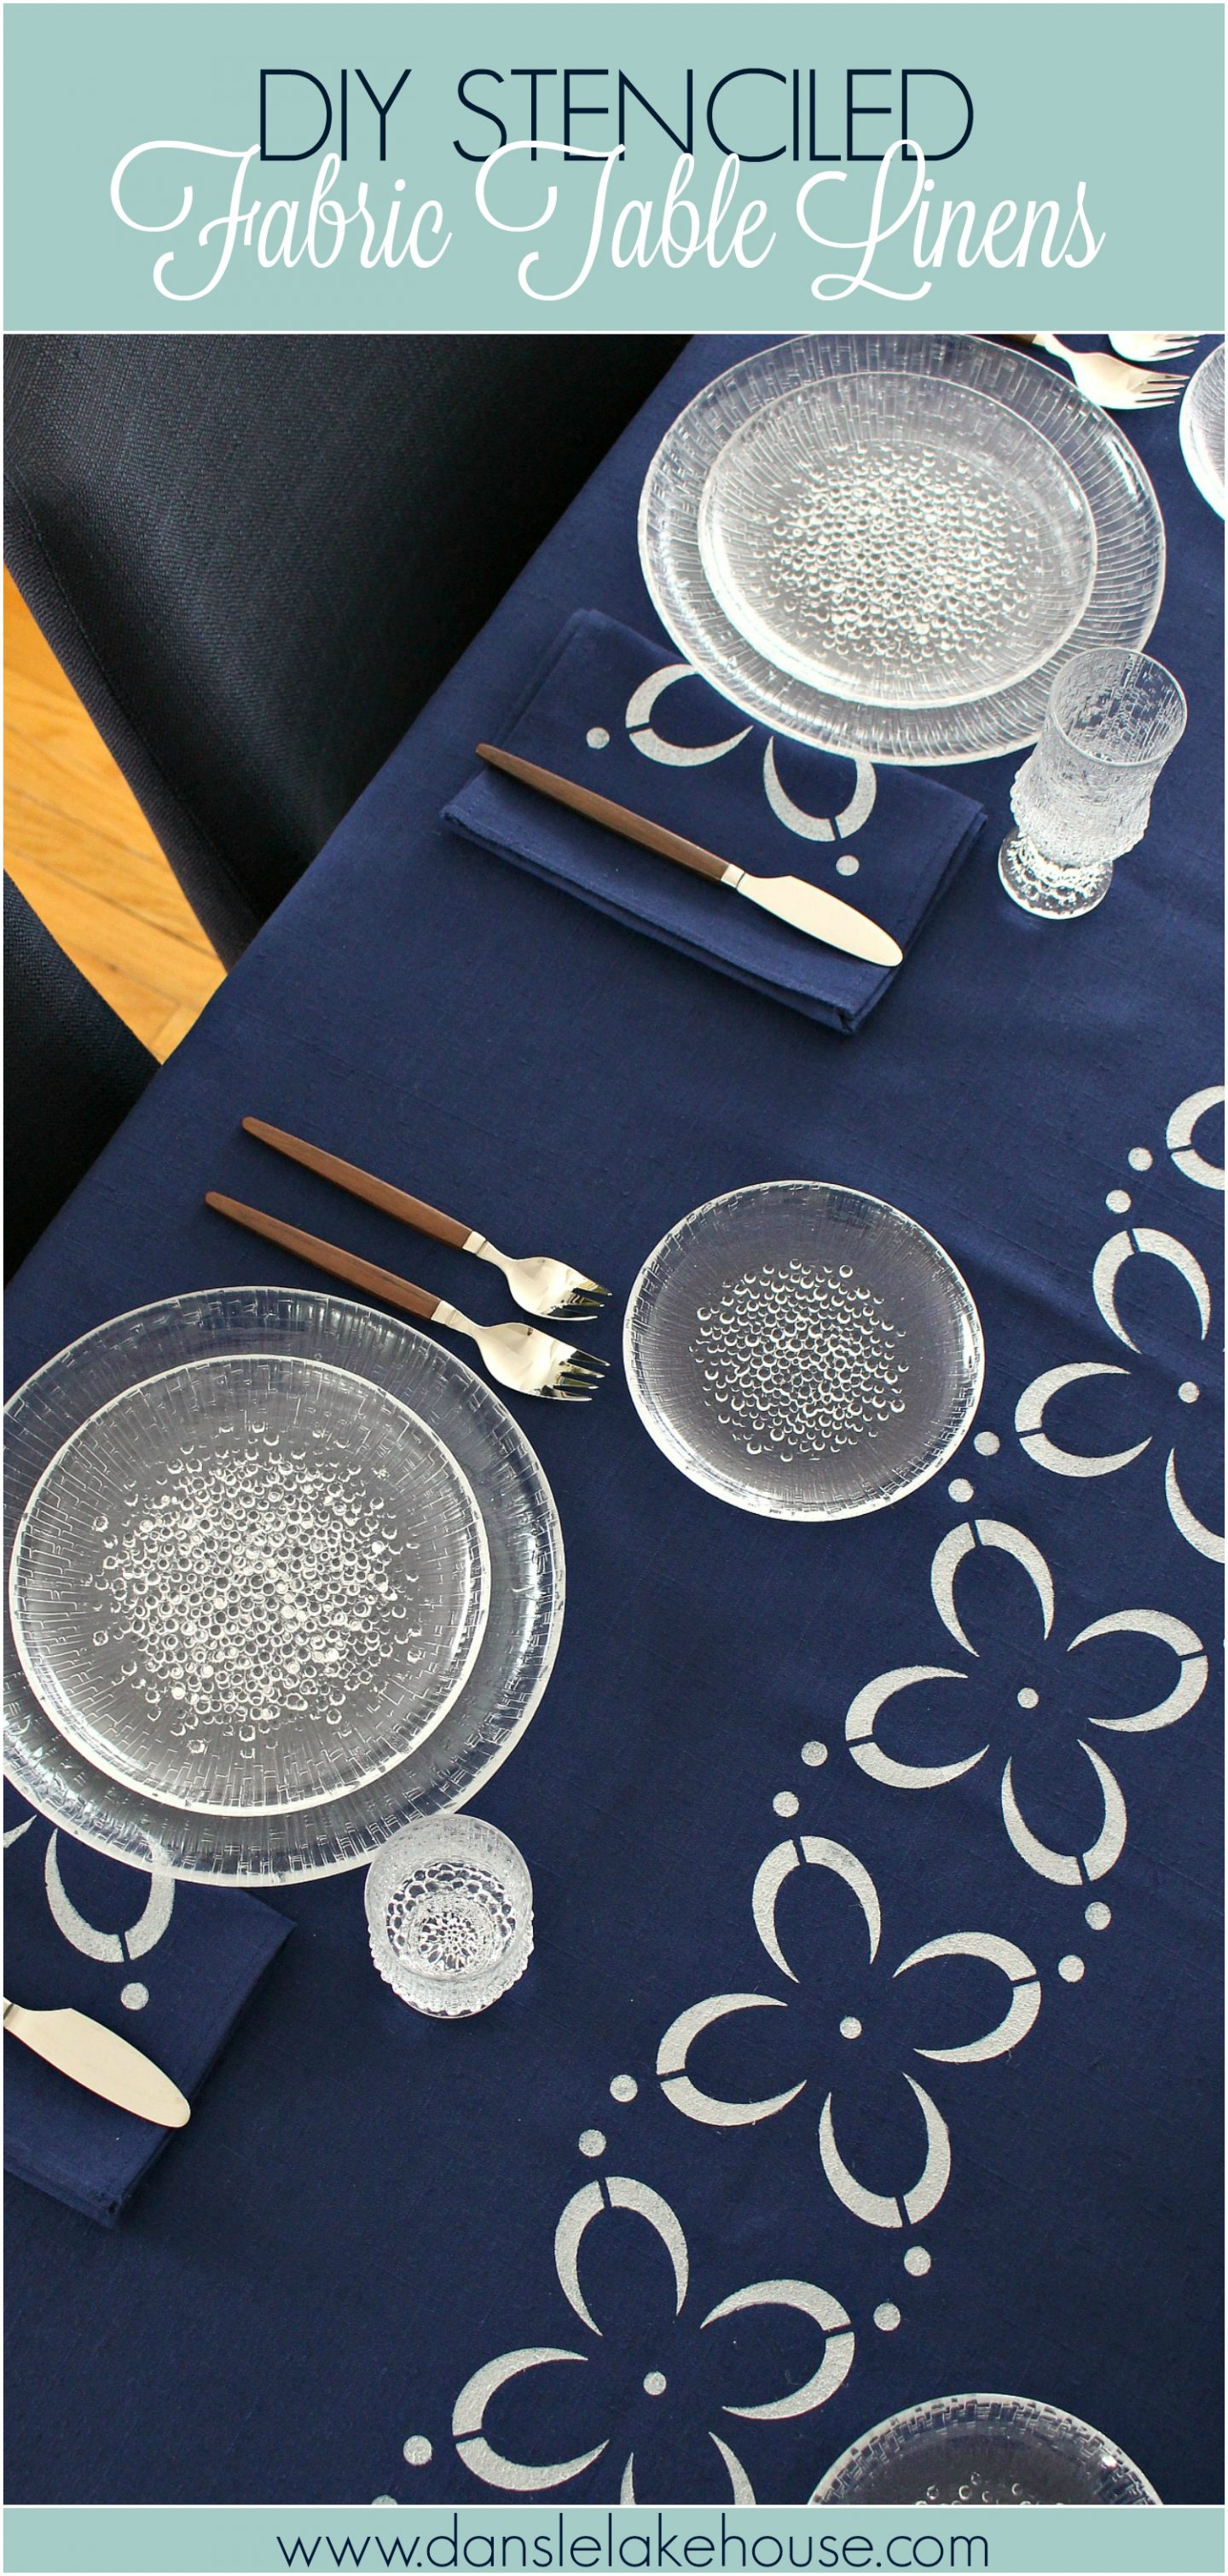 DIY Stenciled Fabric Table Linens